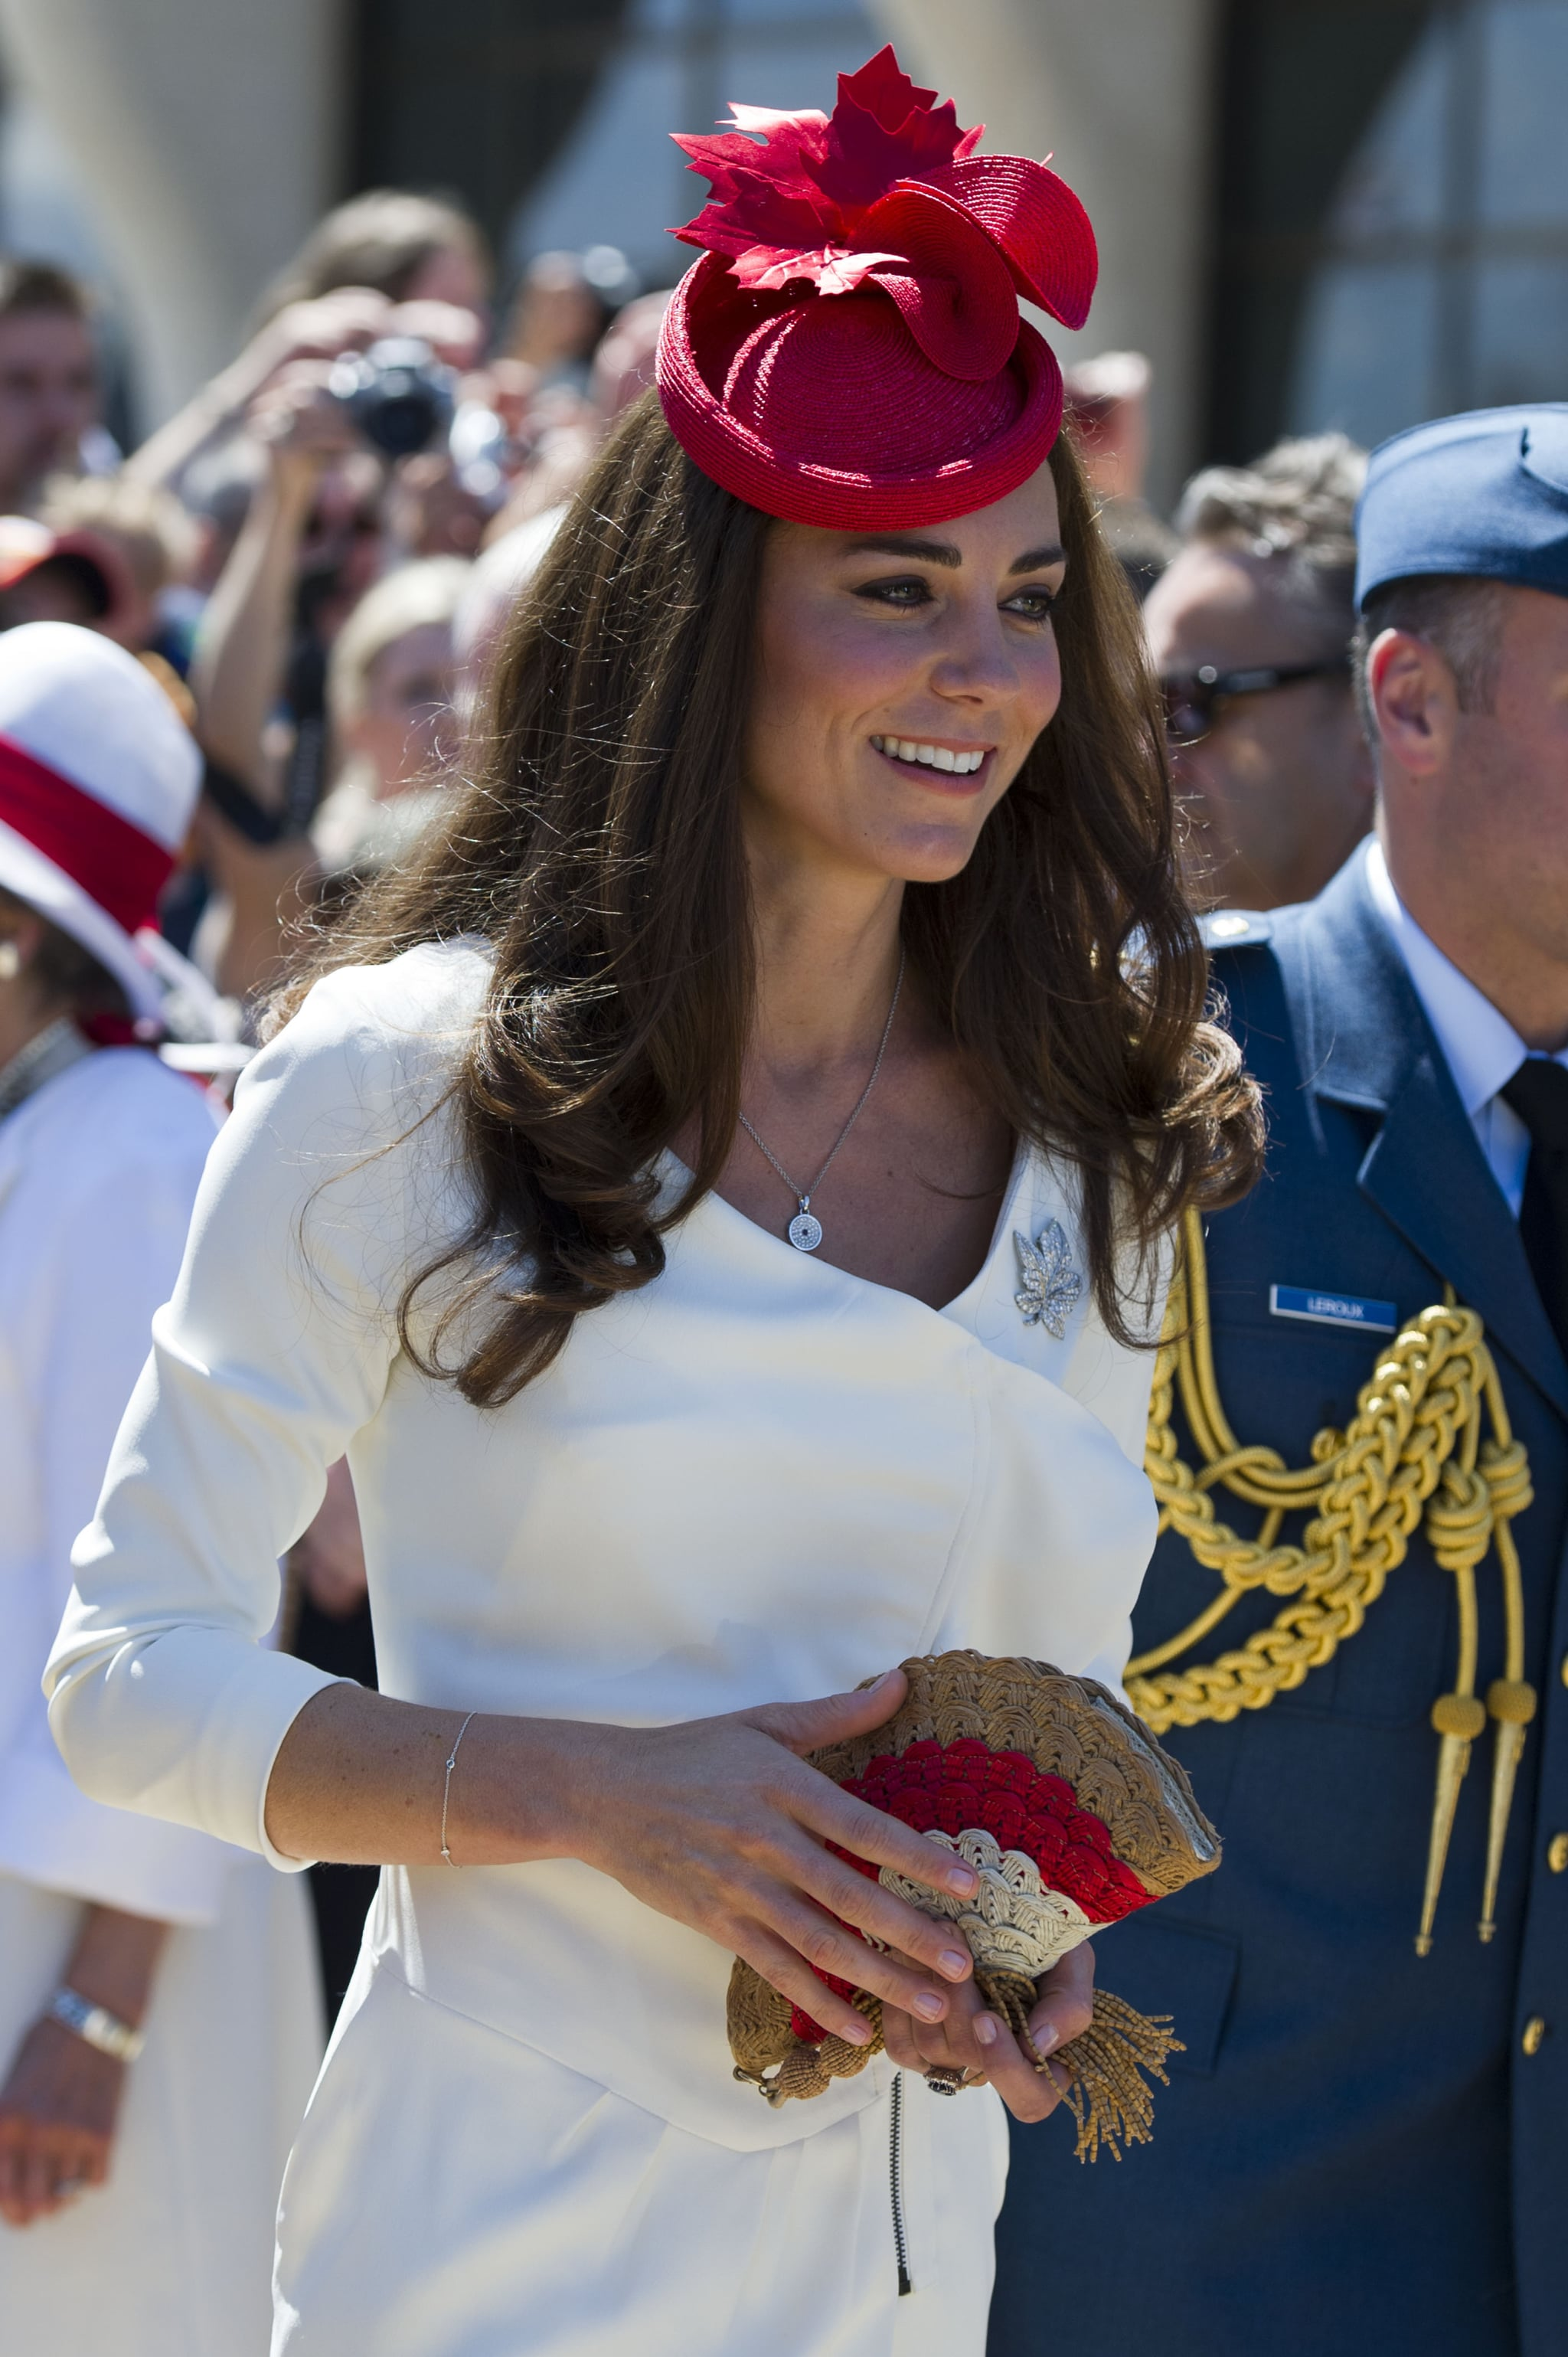 July 1st, 2011  Arriving for a citizenship ceremony at the Canadian Museum of Civilization in Gatineau, Canada.  In honor of Canada Day and the nation's 144th birthday, Kate wore a red maple leaf fascinator from Lock and Co. The diamond maple leaf pin is on loan from the Queen.